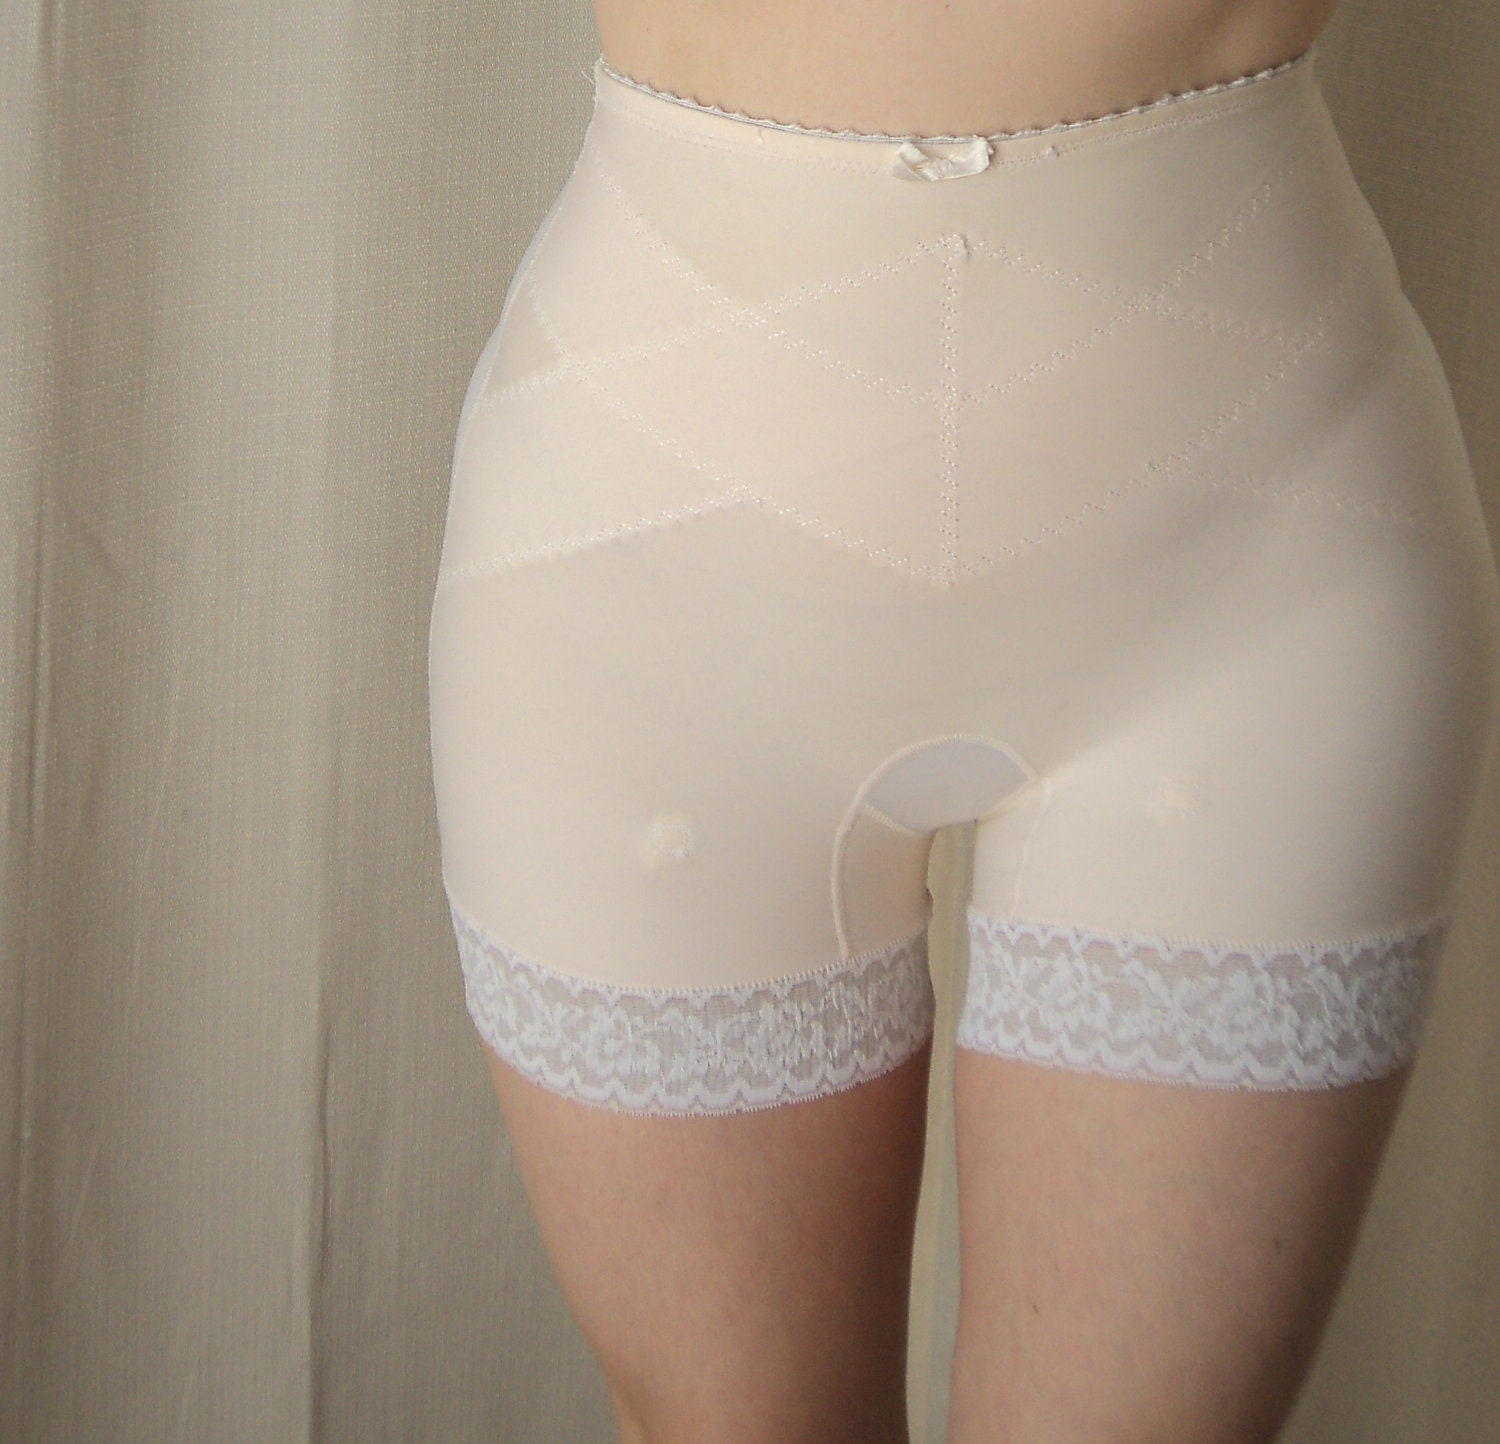 Long Leg Panty Girdle Detatchable Garter Loops Unworn Size